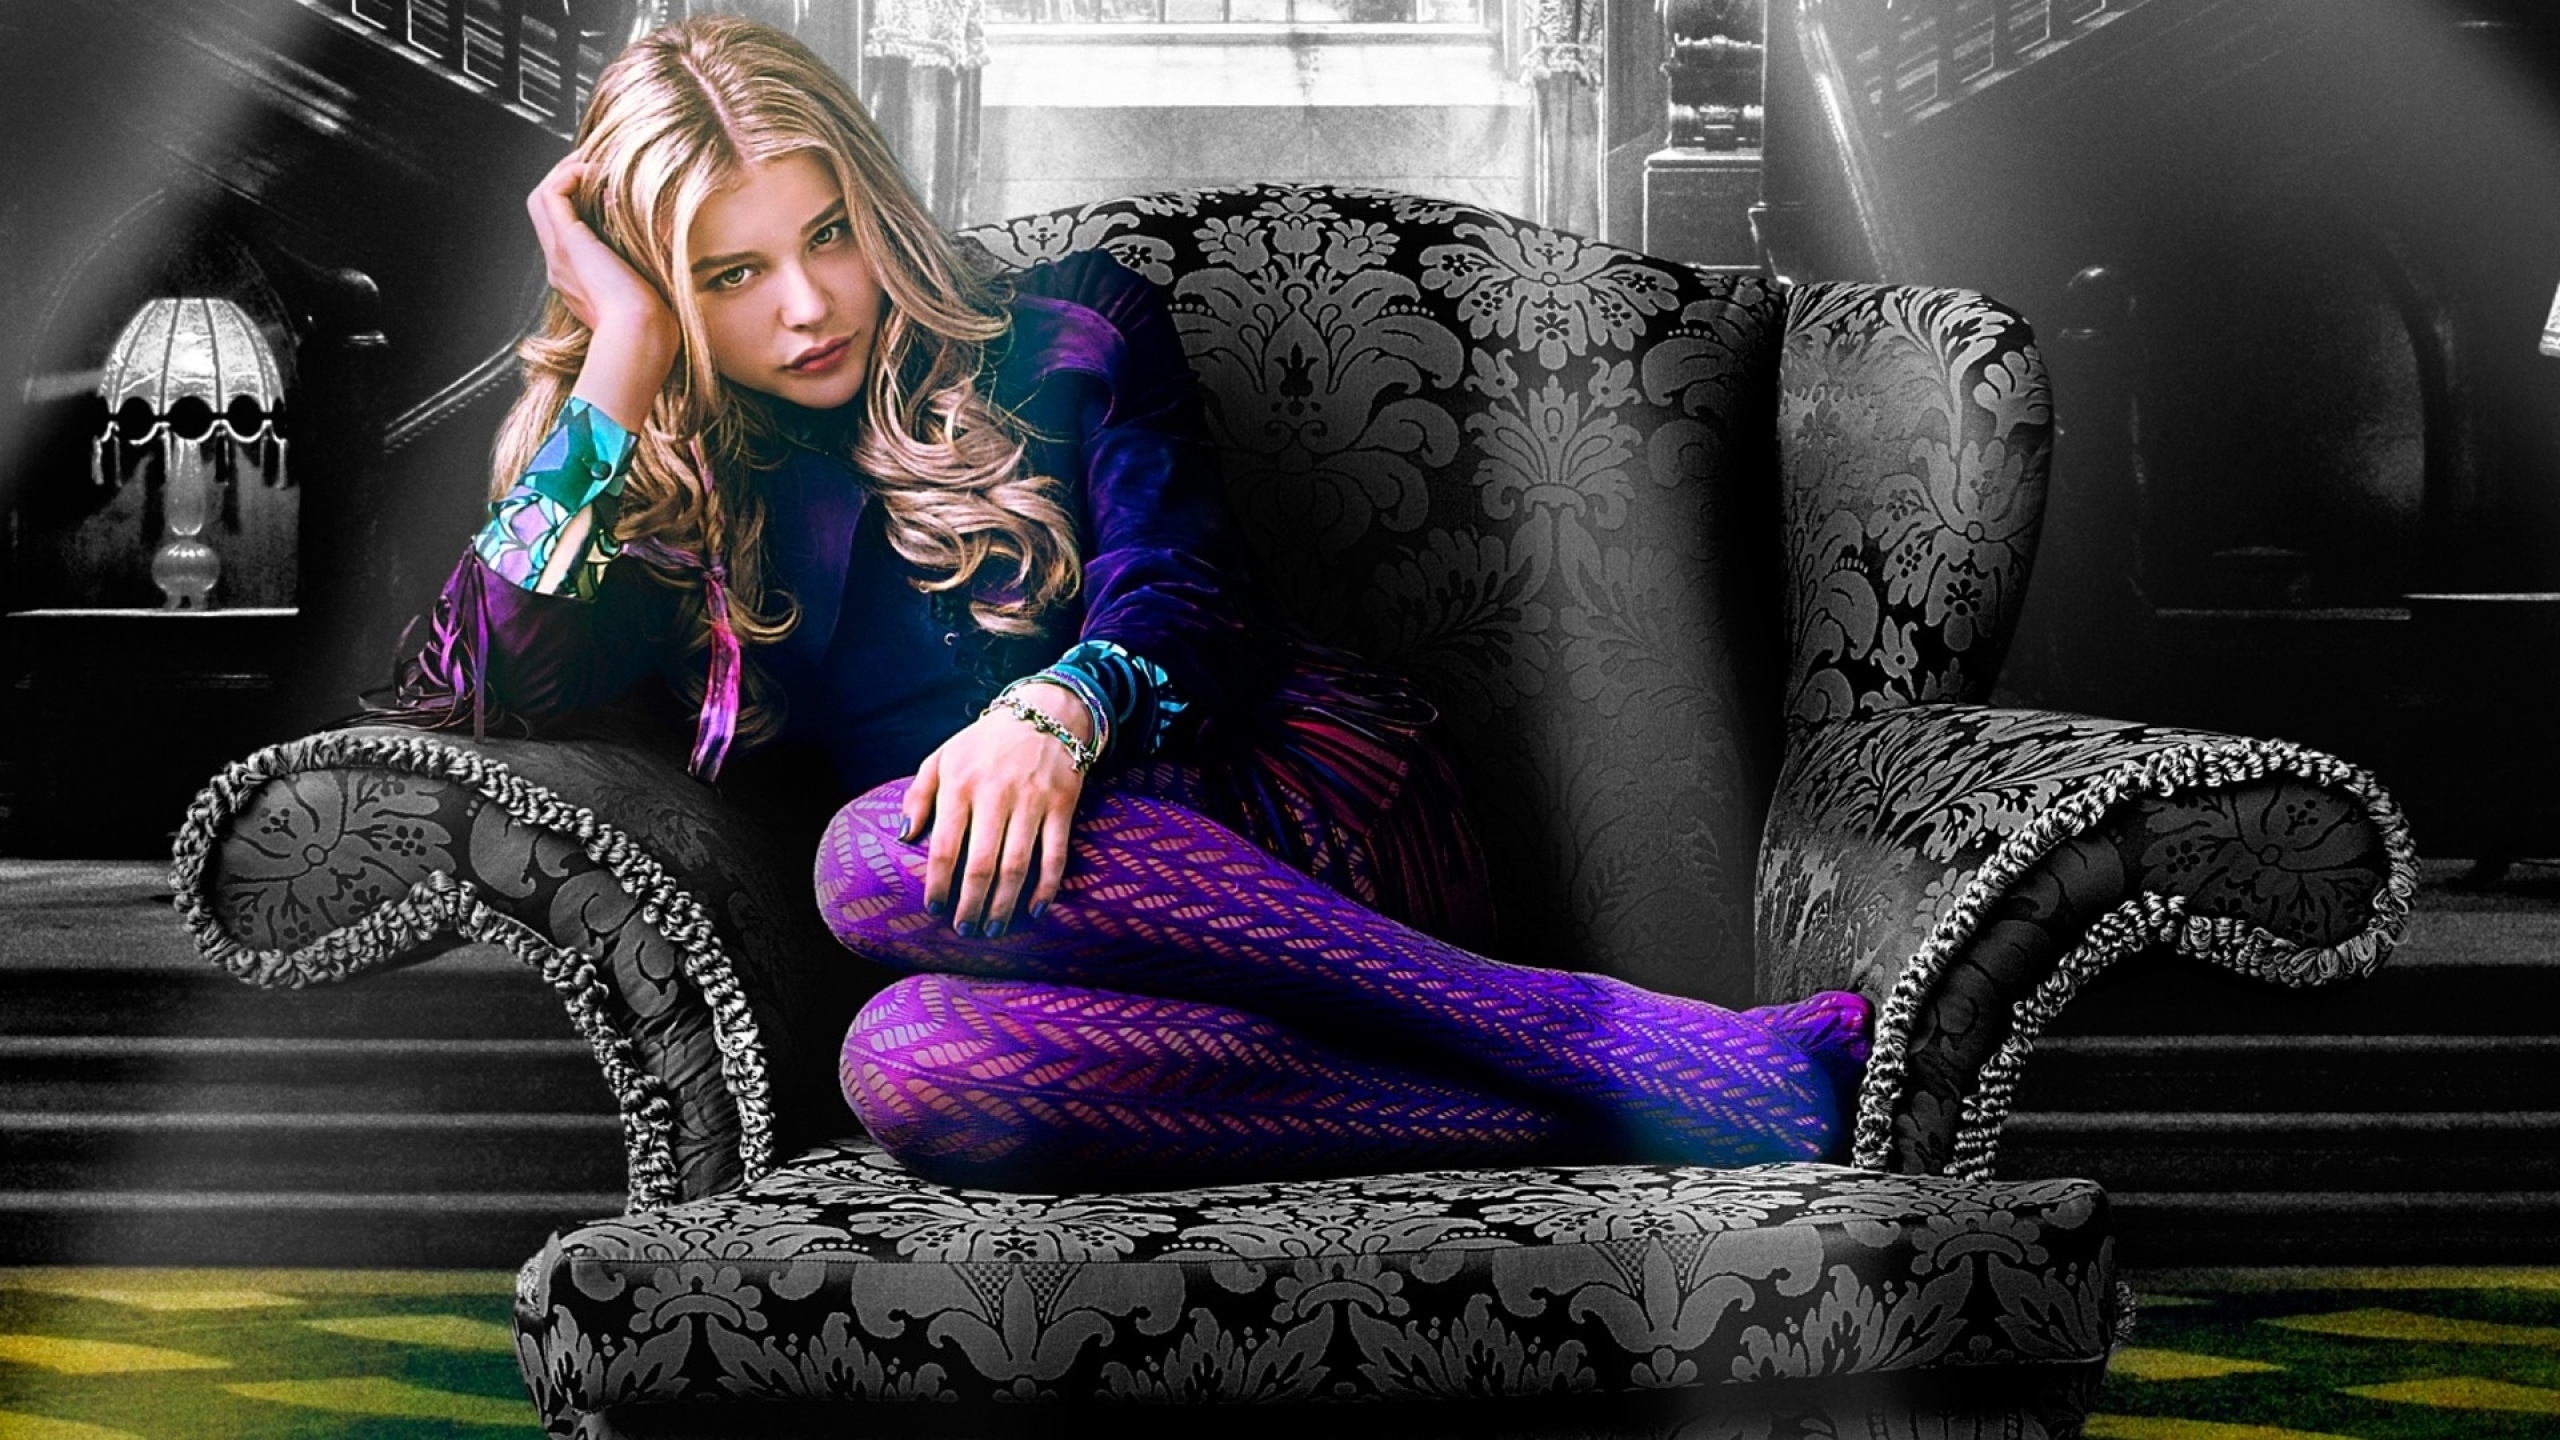 56 dark shadows hd wallpapers background images wallpaper abyss publicscrutiny Image collections